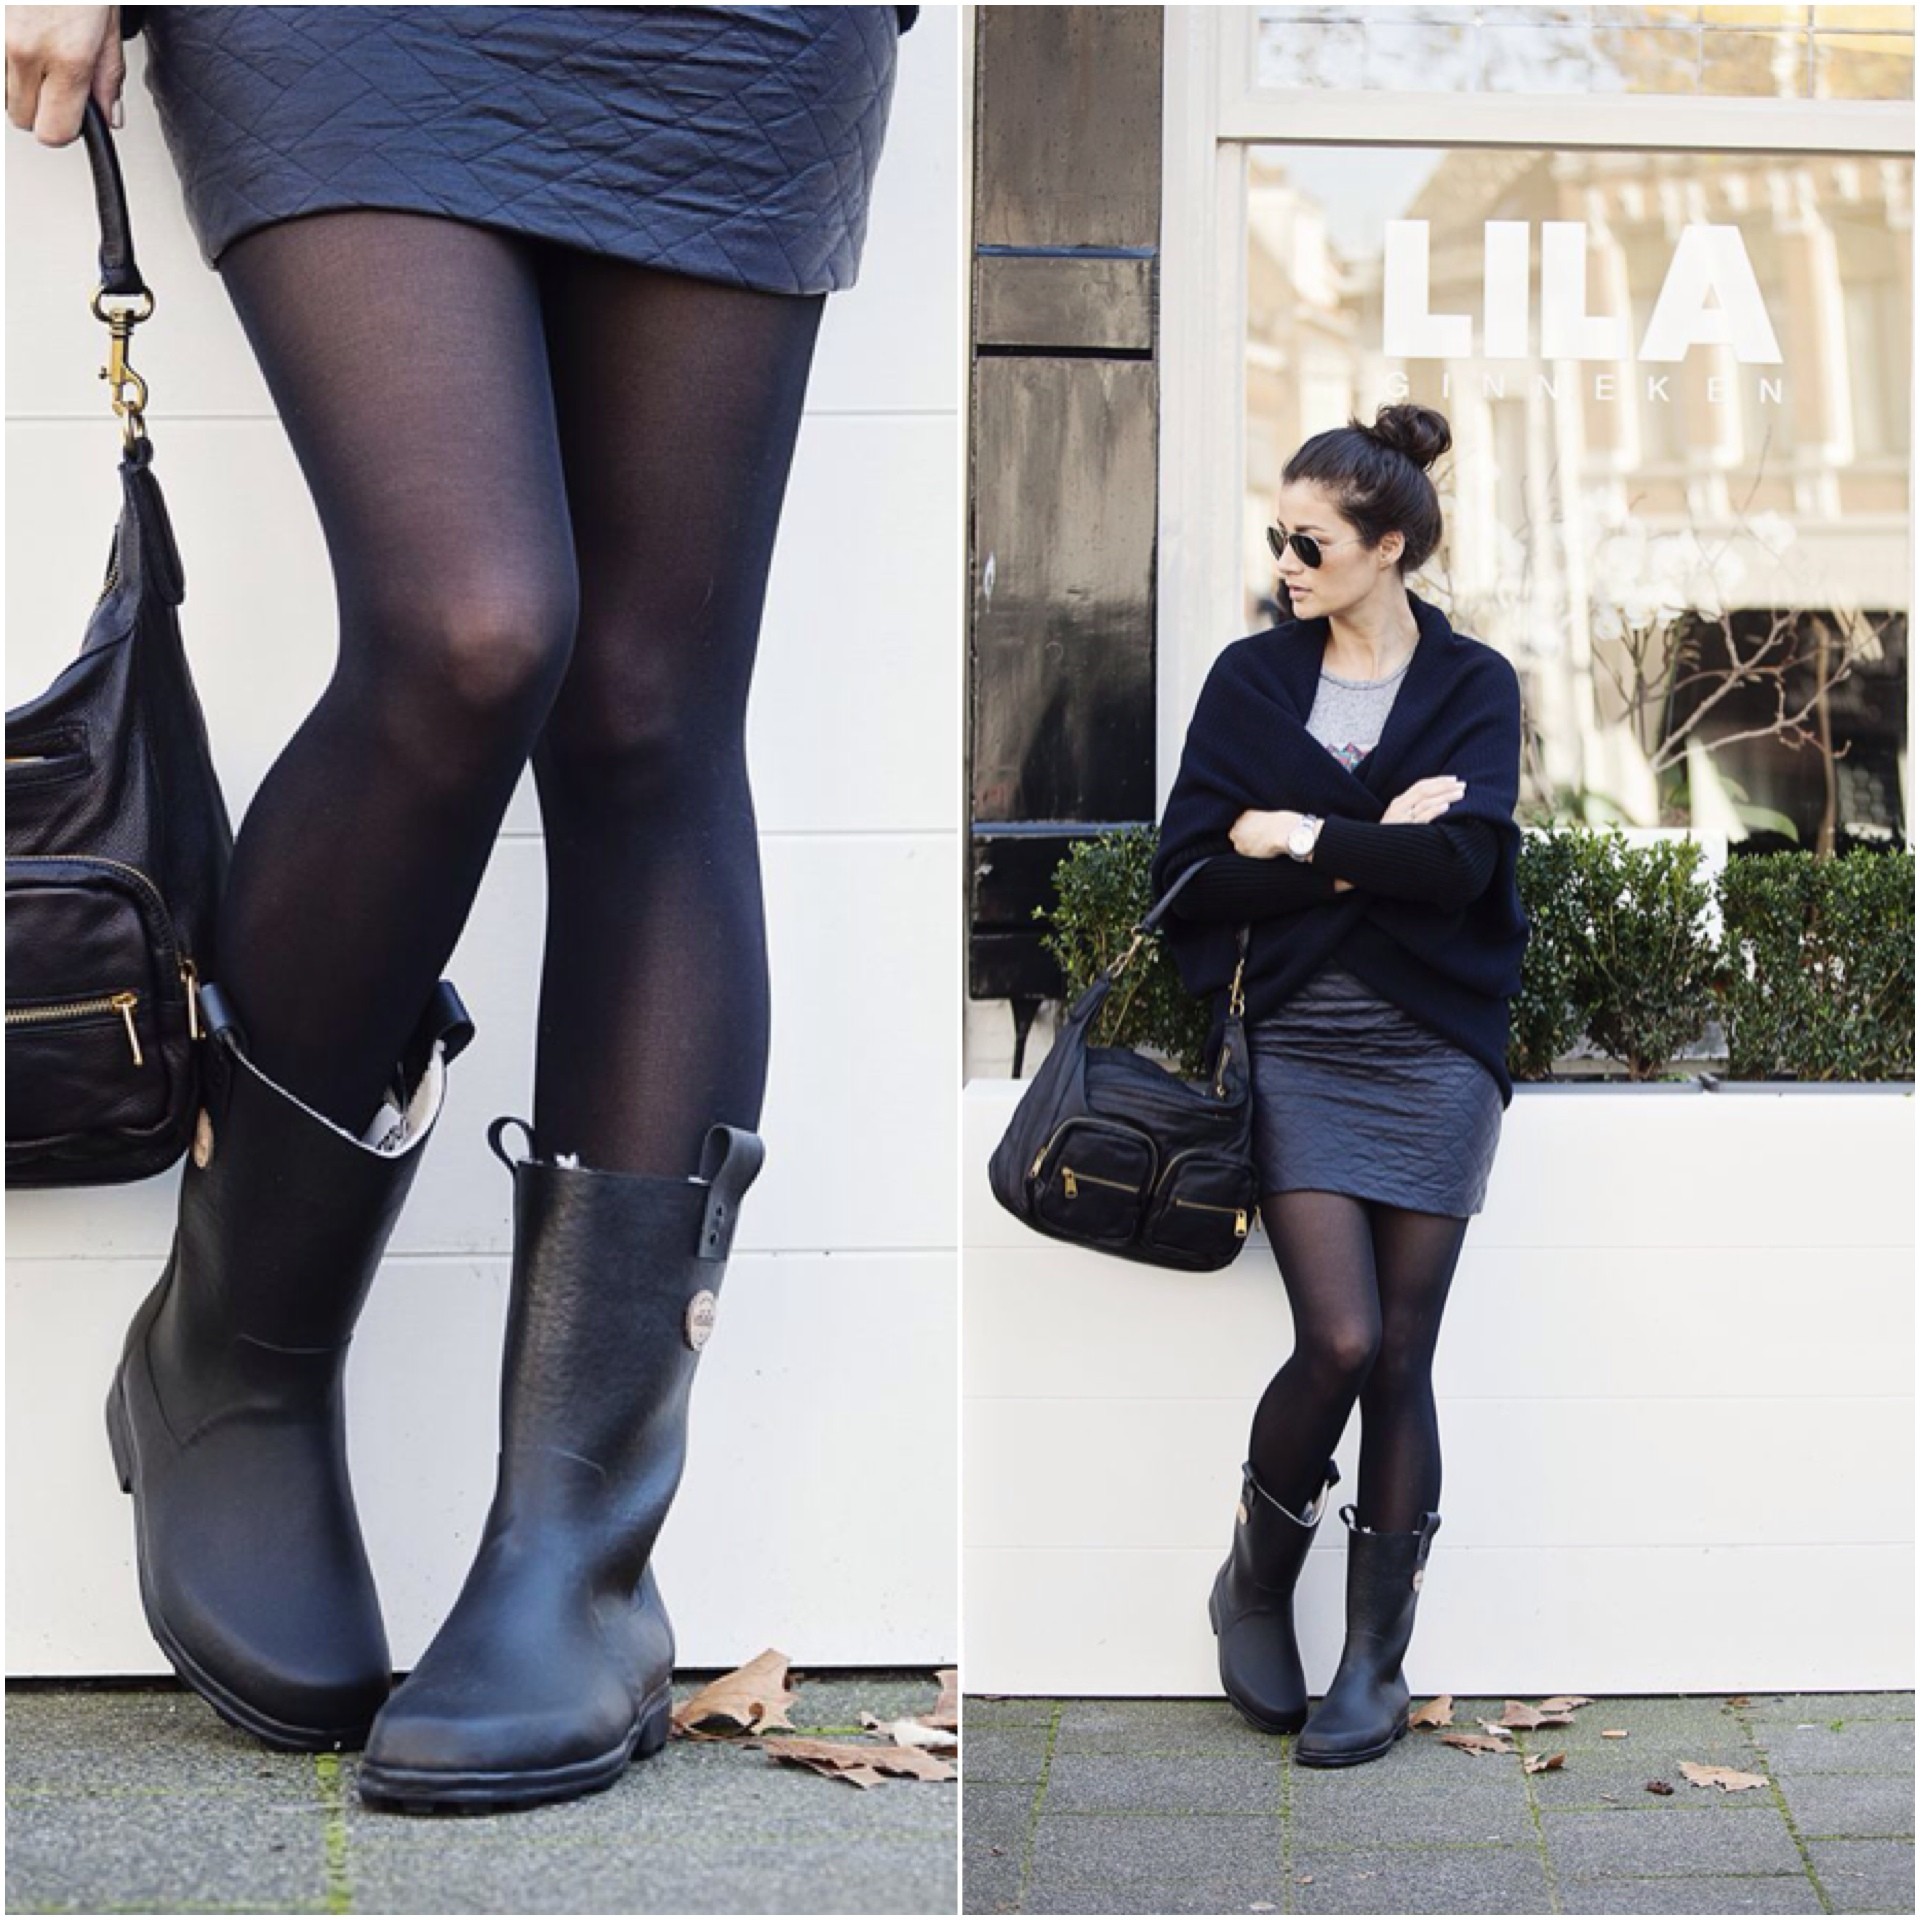 Streetstyle look fall 2014 wellies with skirt BlogForShops for Lila Breda